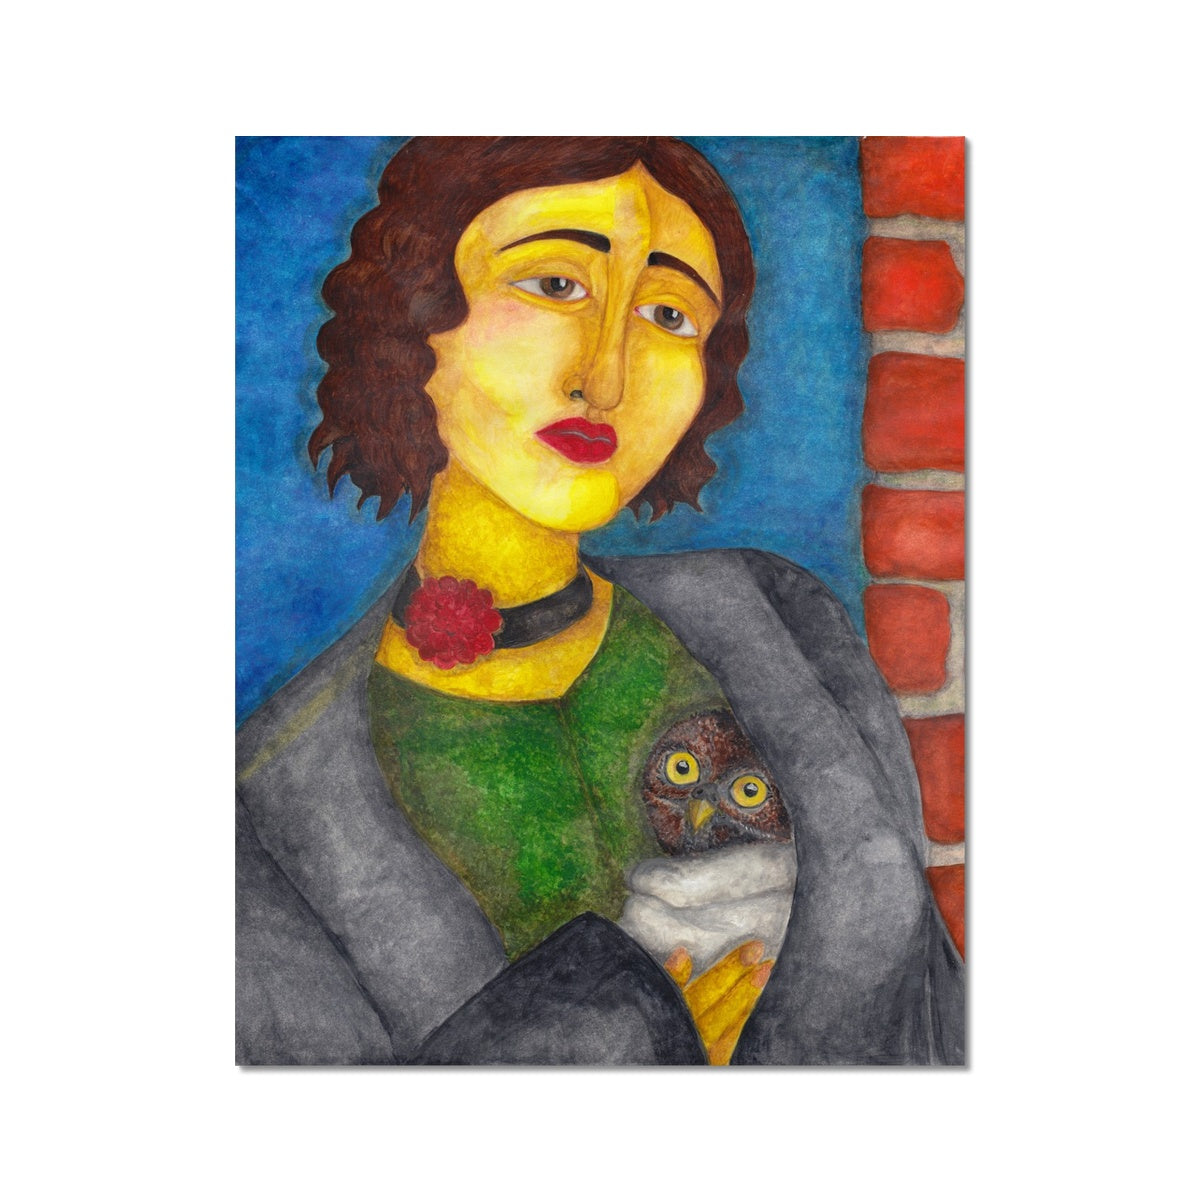 "Art Print, Watercolor Painting, Woman Portrait, Owl, Owlet, Titled: ""Rainy Day"""